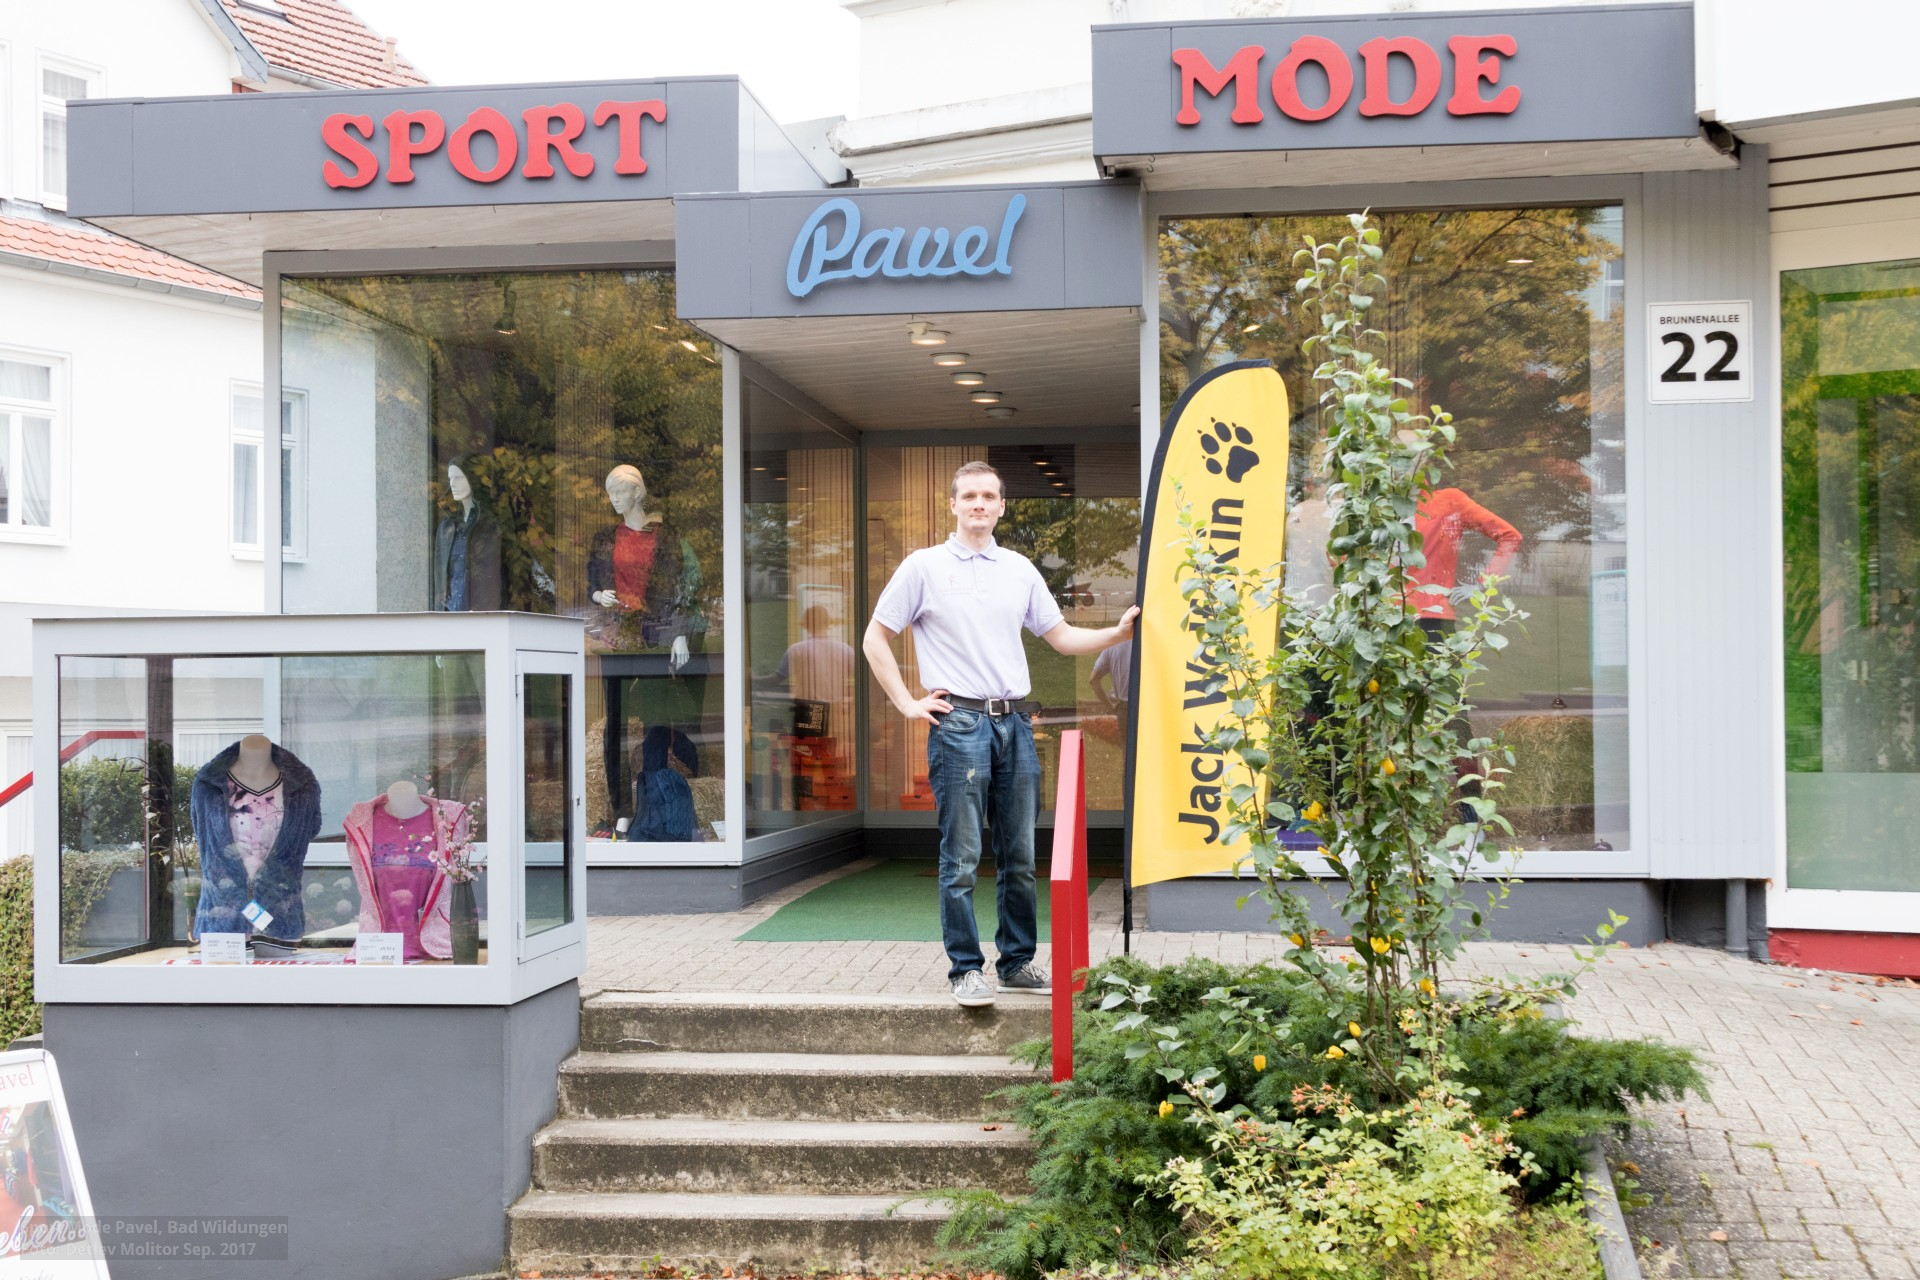 Sport Mode Pavel, Sport 2000